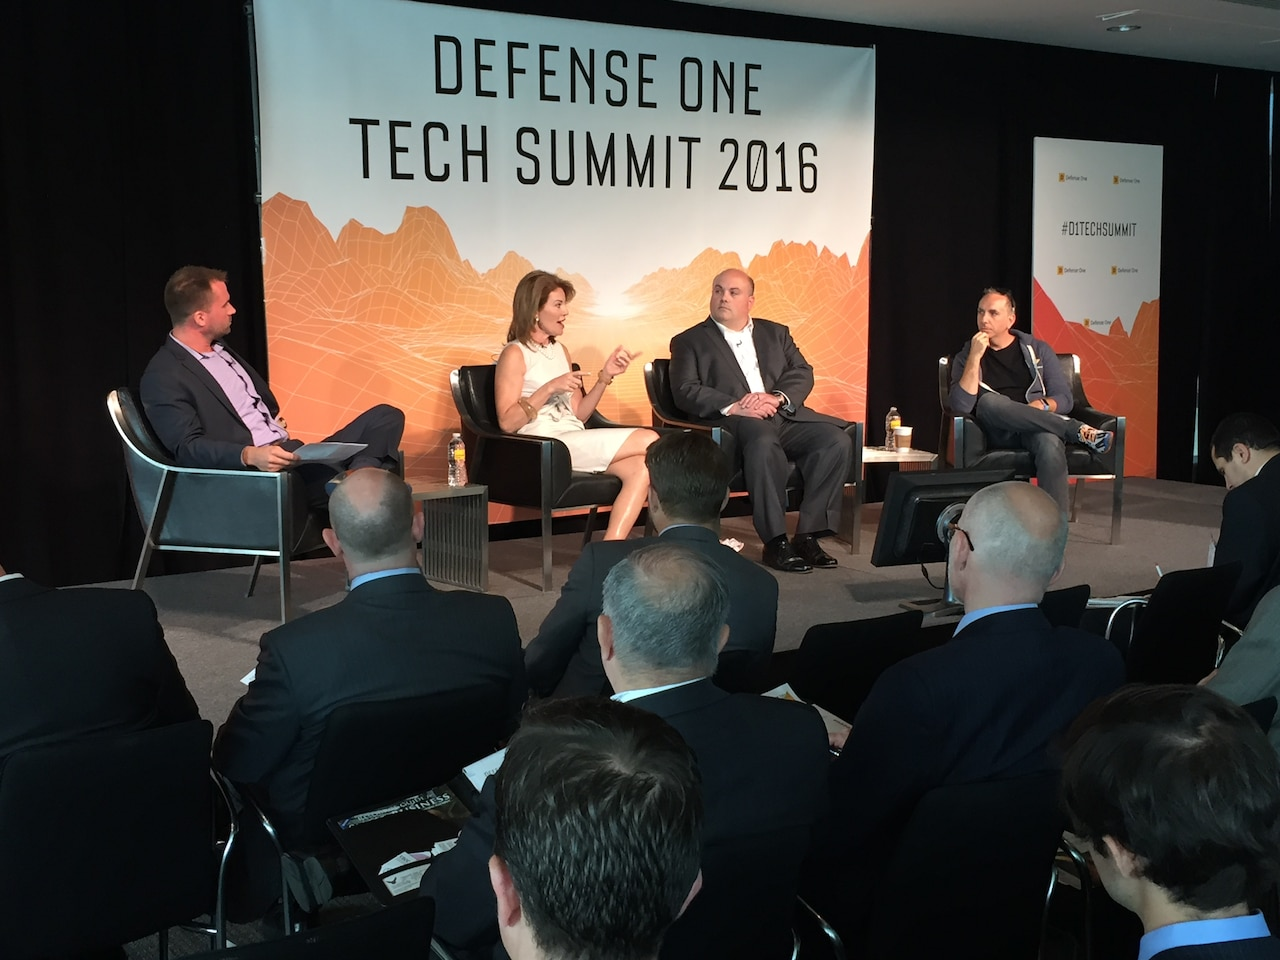 Defense Digital Service Director Chris Lynch, right, explains how his office works within the Pentagon during a presentation at the Defense One Tech Summit in Washington, June 10, 2016. DoD photo by Jim Garamone